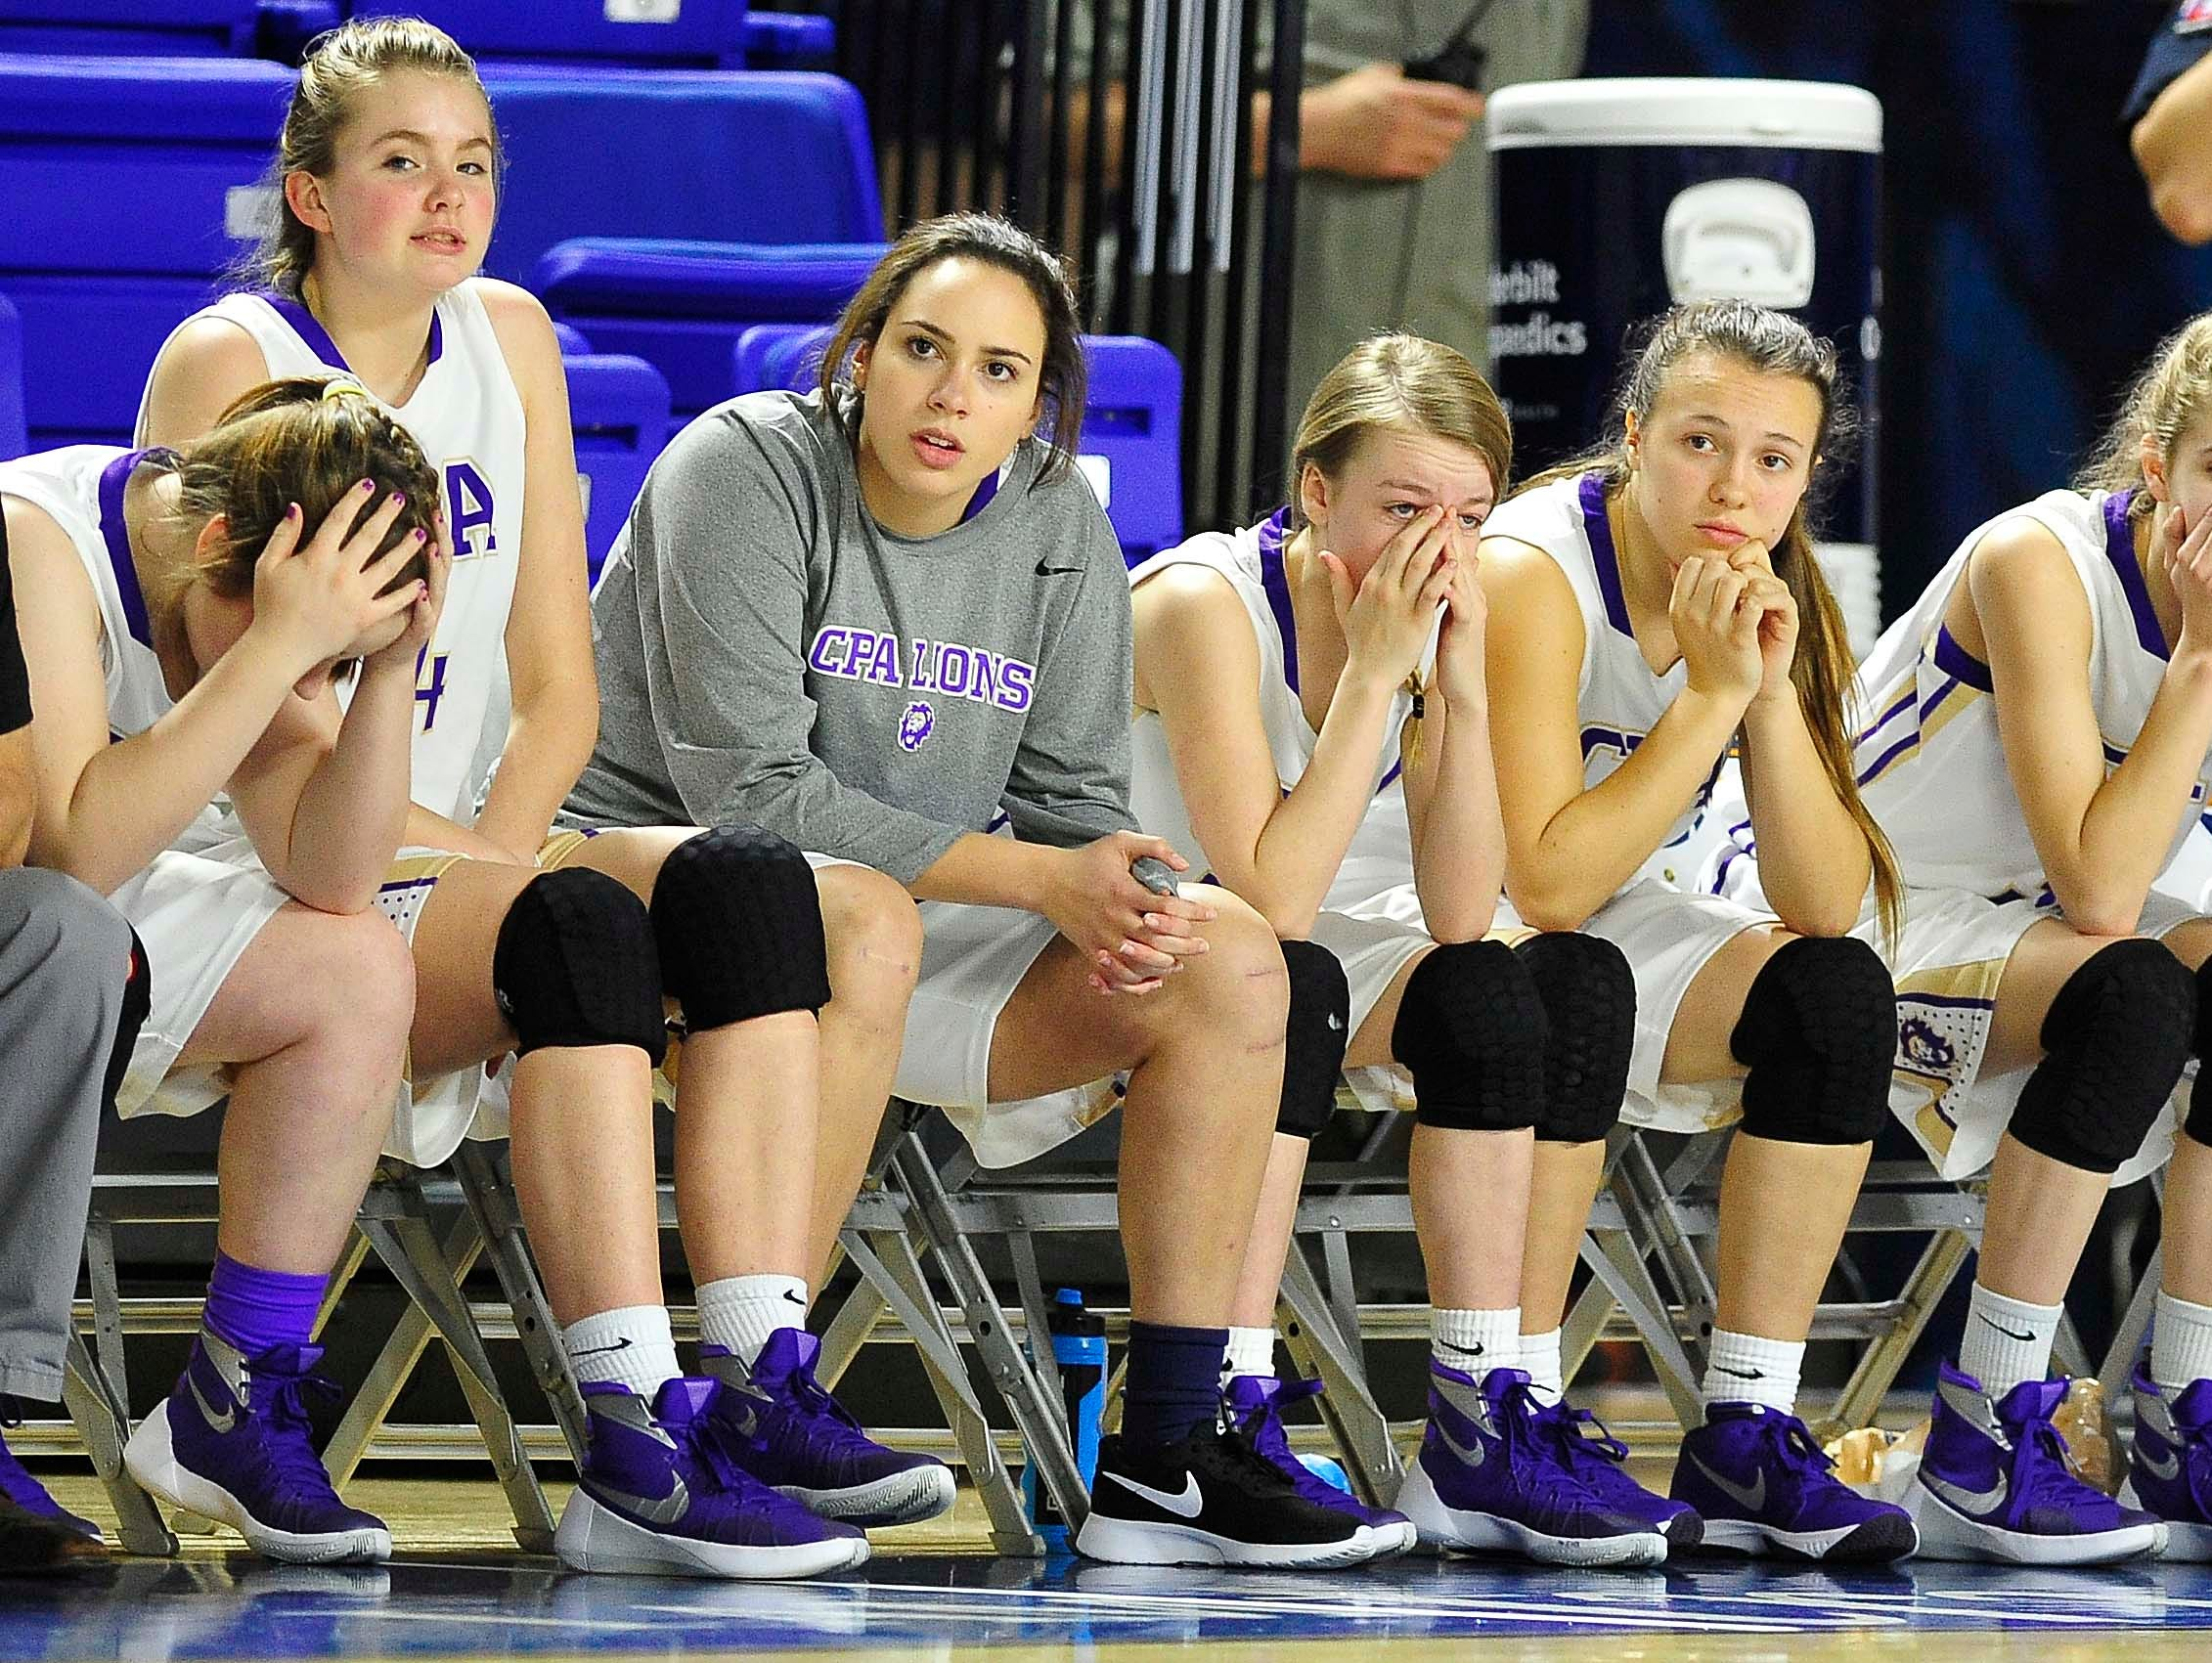 CPA's bench looks on in a final seconds of the game as East Nashville wins 47-35 in the Division I Class AA Girl's basketball tournament at the Murphy Center on MTSU's campus March 10, 2016 in Murfreesboro, Tenn.